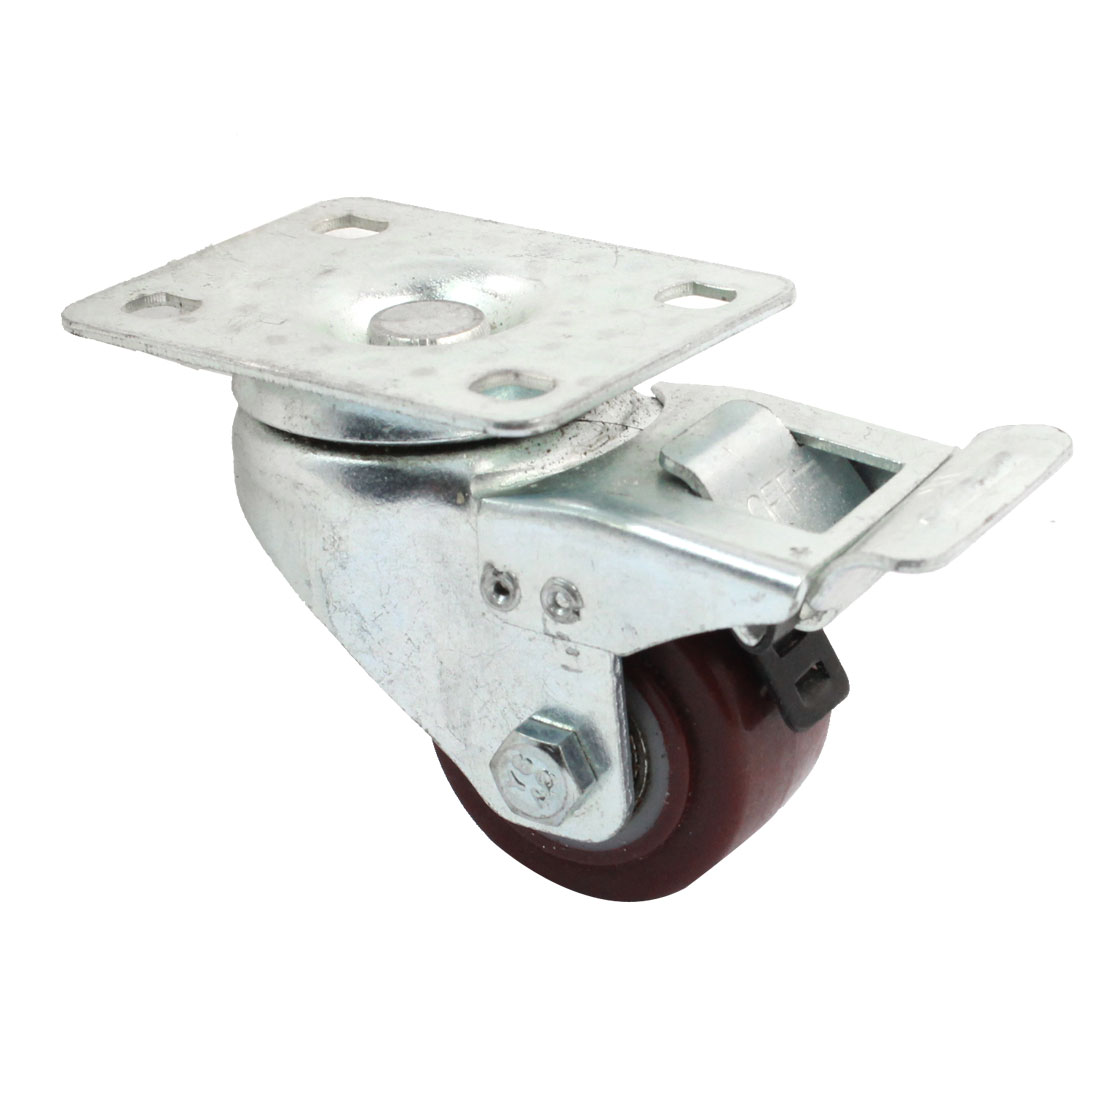 "Furniture Trolley Rotation Rectangle Plate Brake Swivel Caster 1.5"" Wheel"